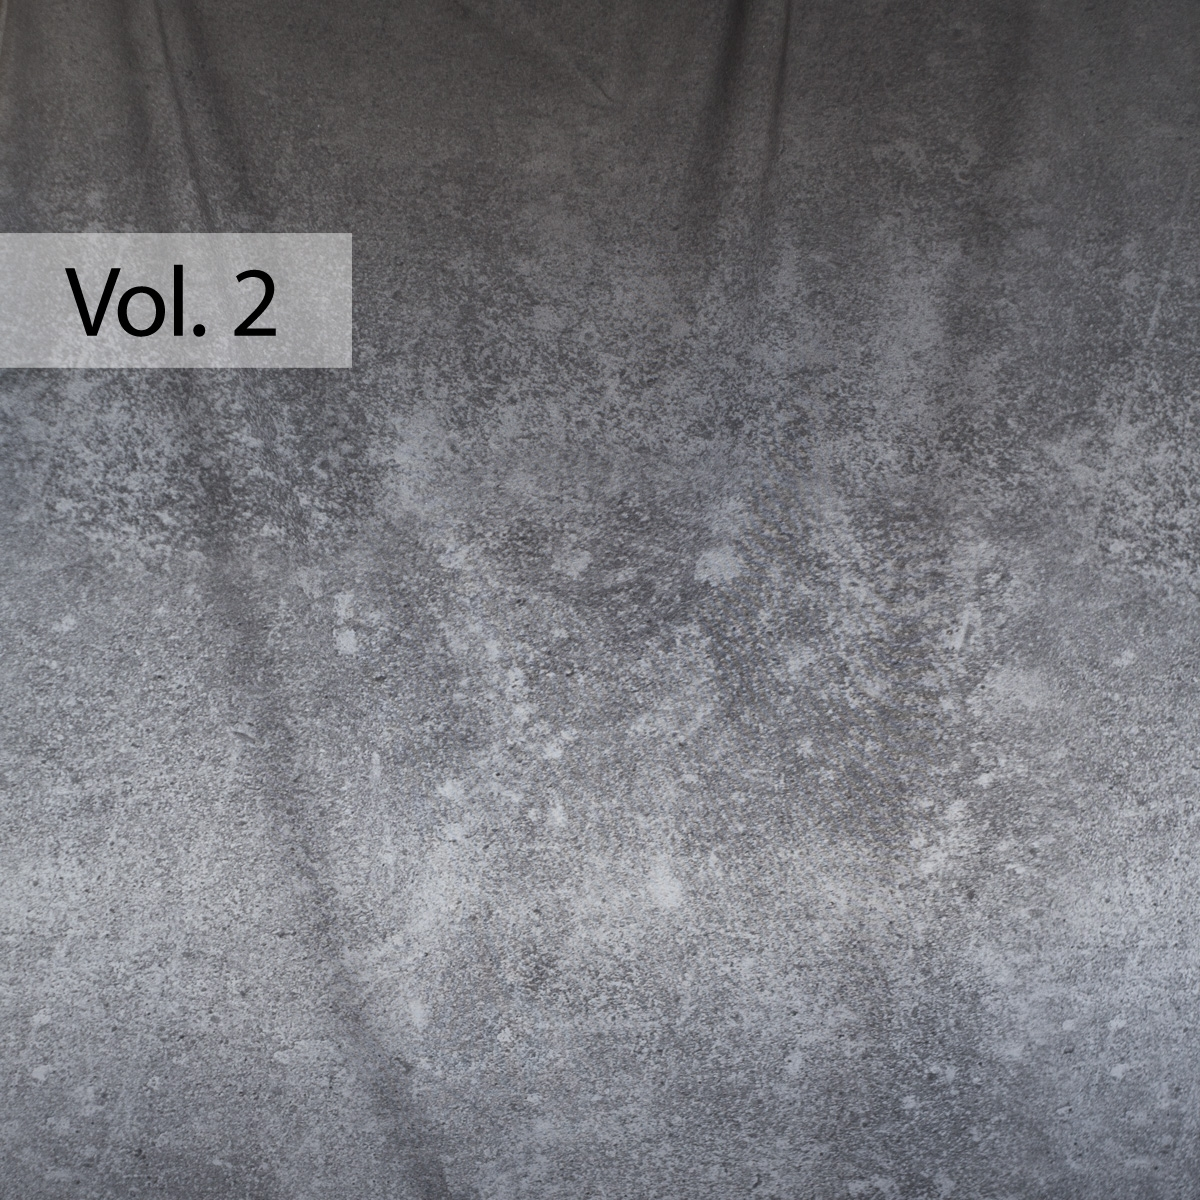 LeatherGradient - silver - Vol. 2